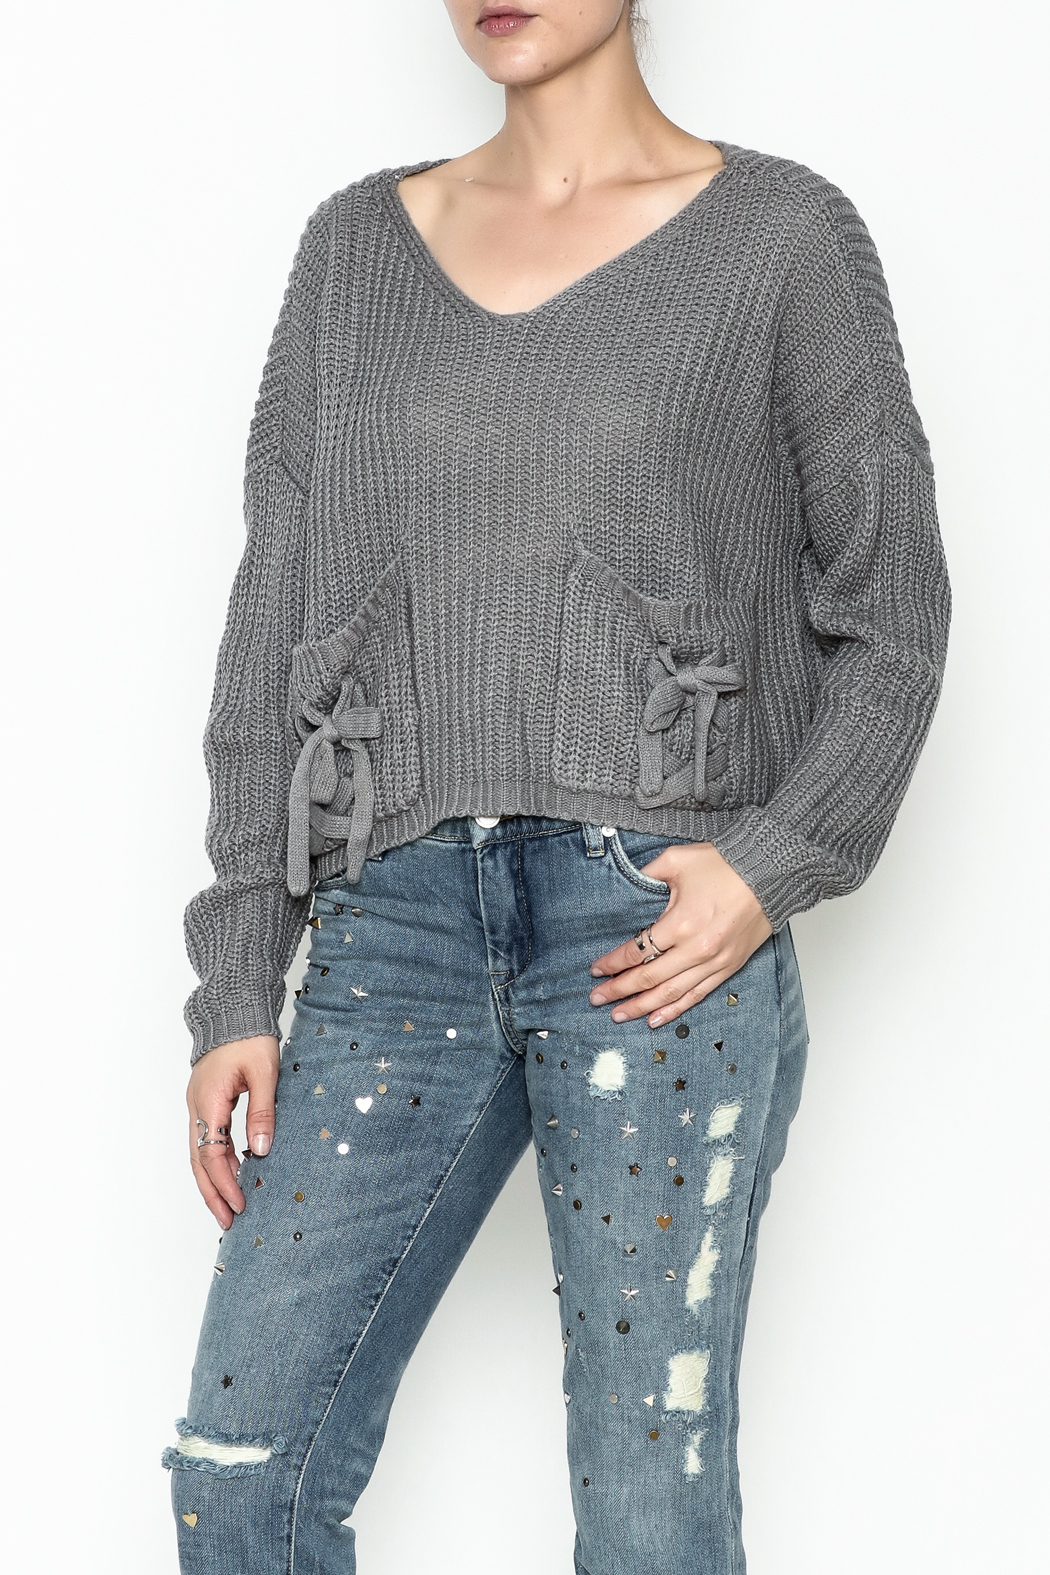 Do-Be Tie Pocket Sweater - Main Image